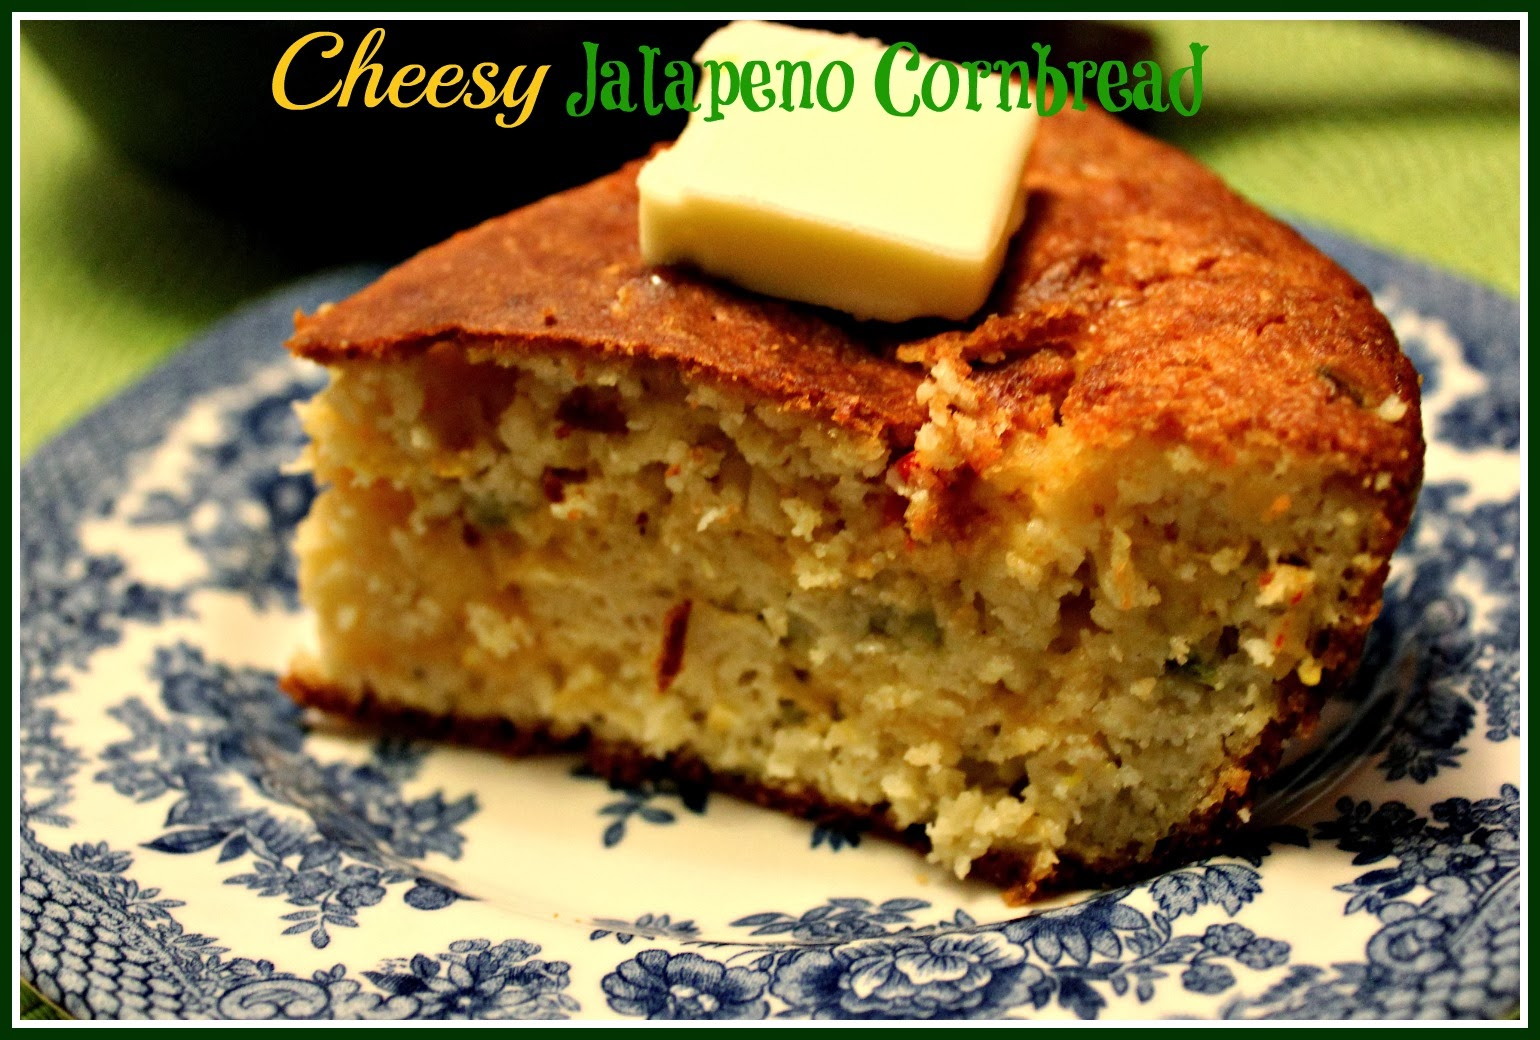 cheddar cornbread cheesy jalapeno cornbread and cheese cornbread ...